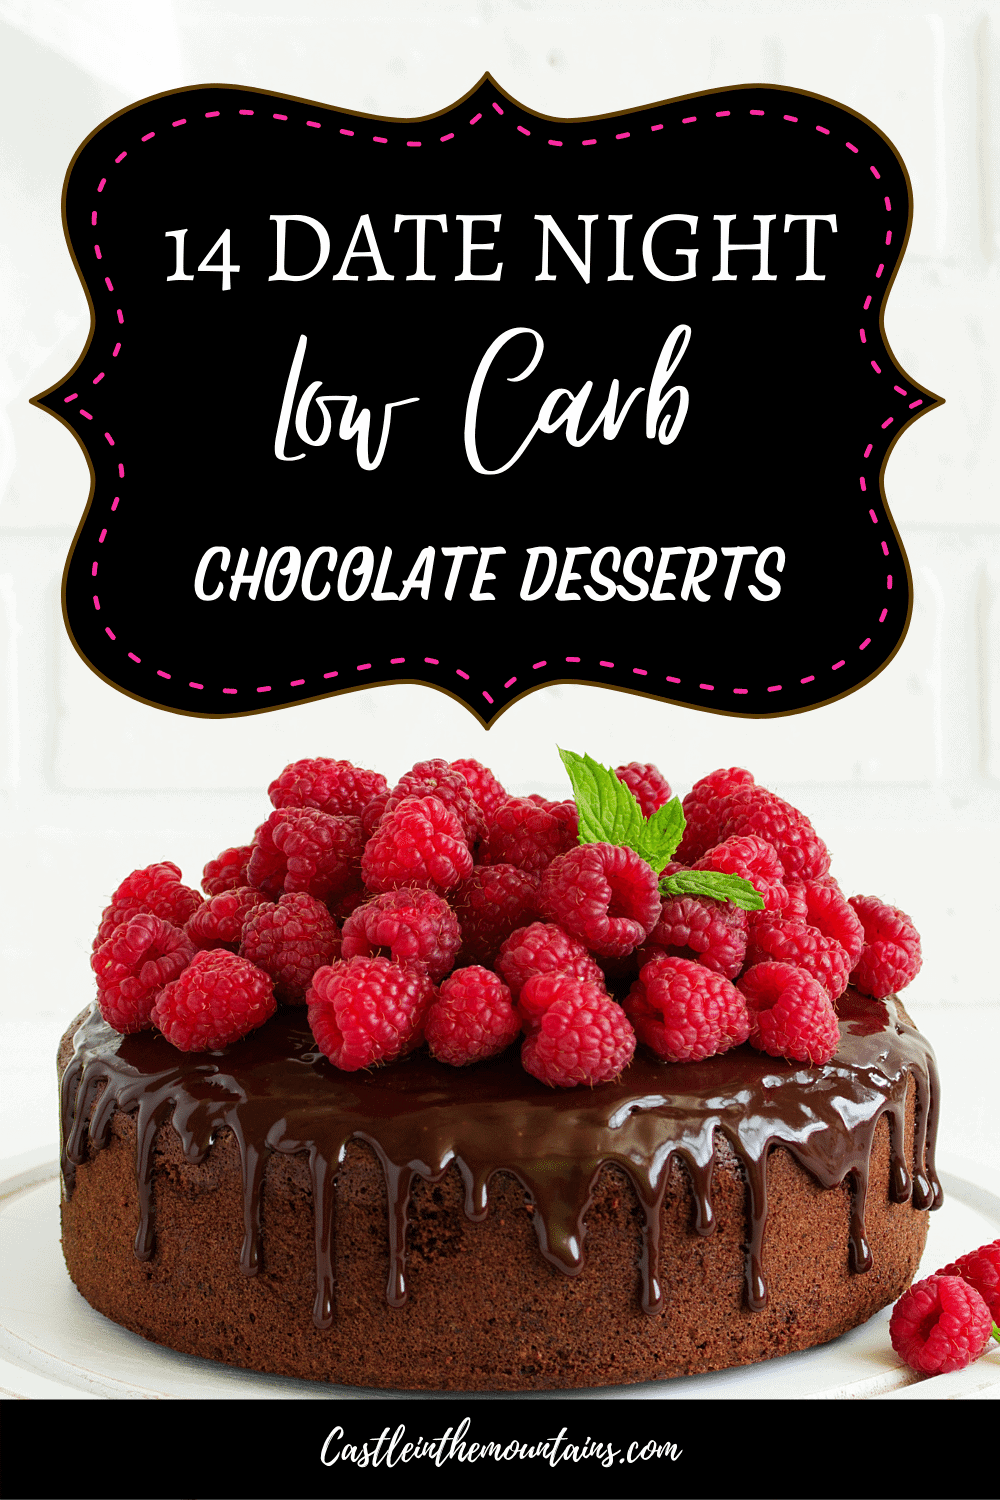 14 Keto Chocolate Desserts - How to make date night treats!